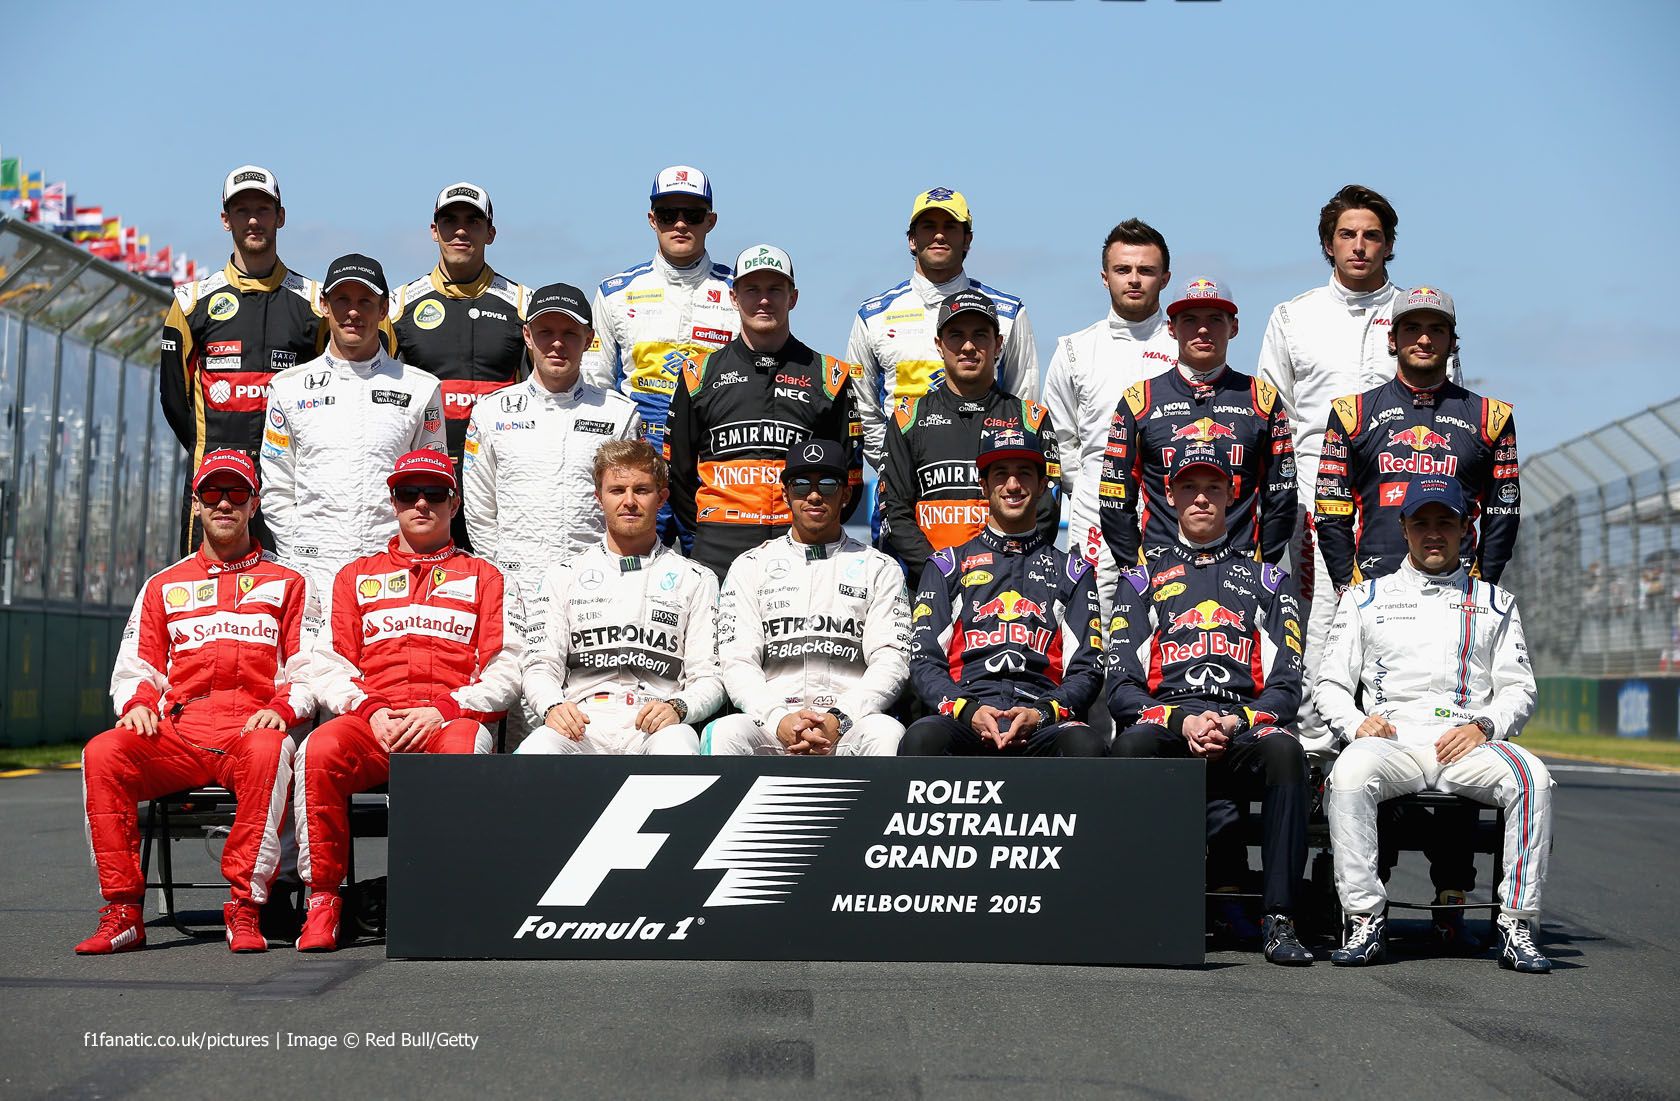 http://superf1.be/spip/IMG/jpg/drivers-2-2.jpg